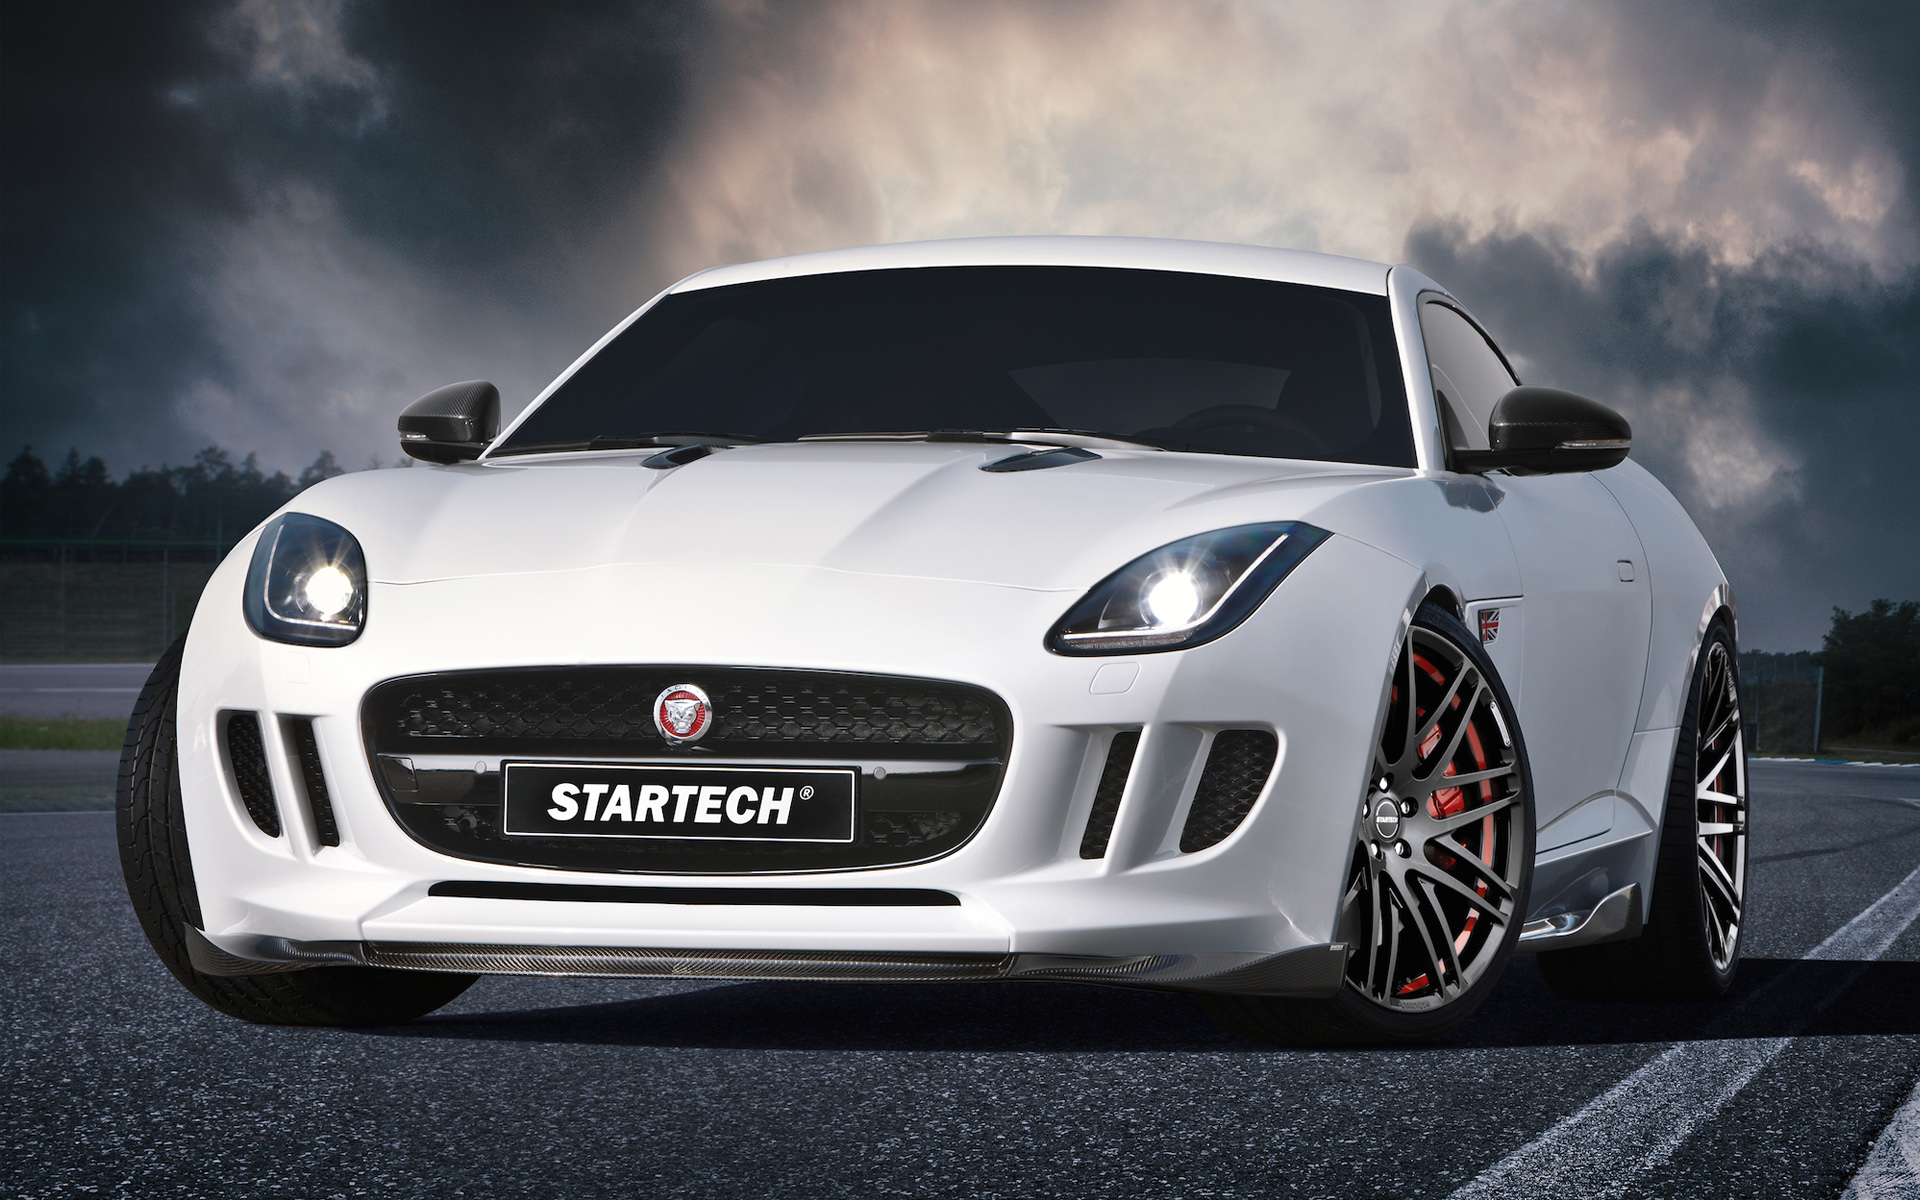 2015 Startech Jaguar F Type Coupe Wallpaper HD Car Wallpapers 1920x1200